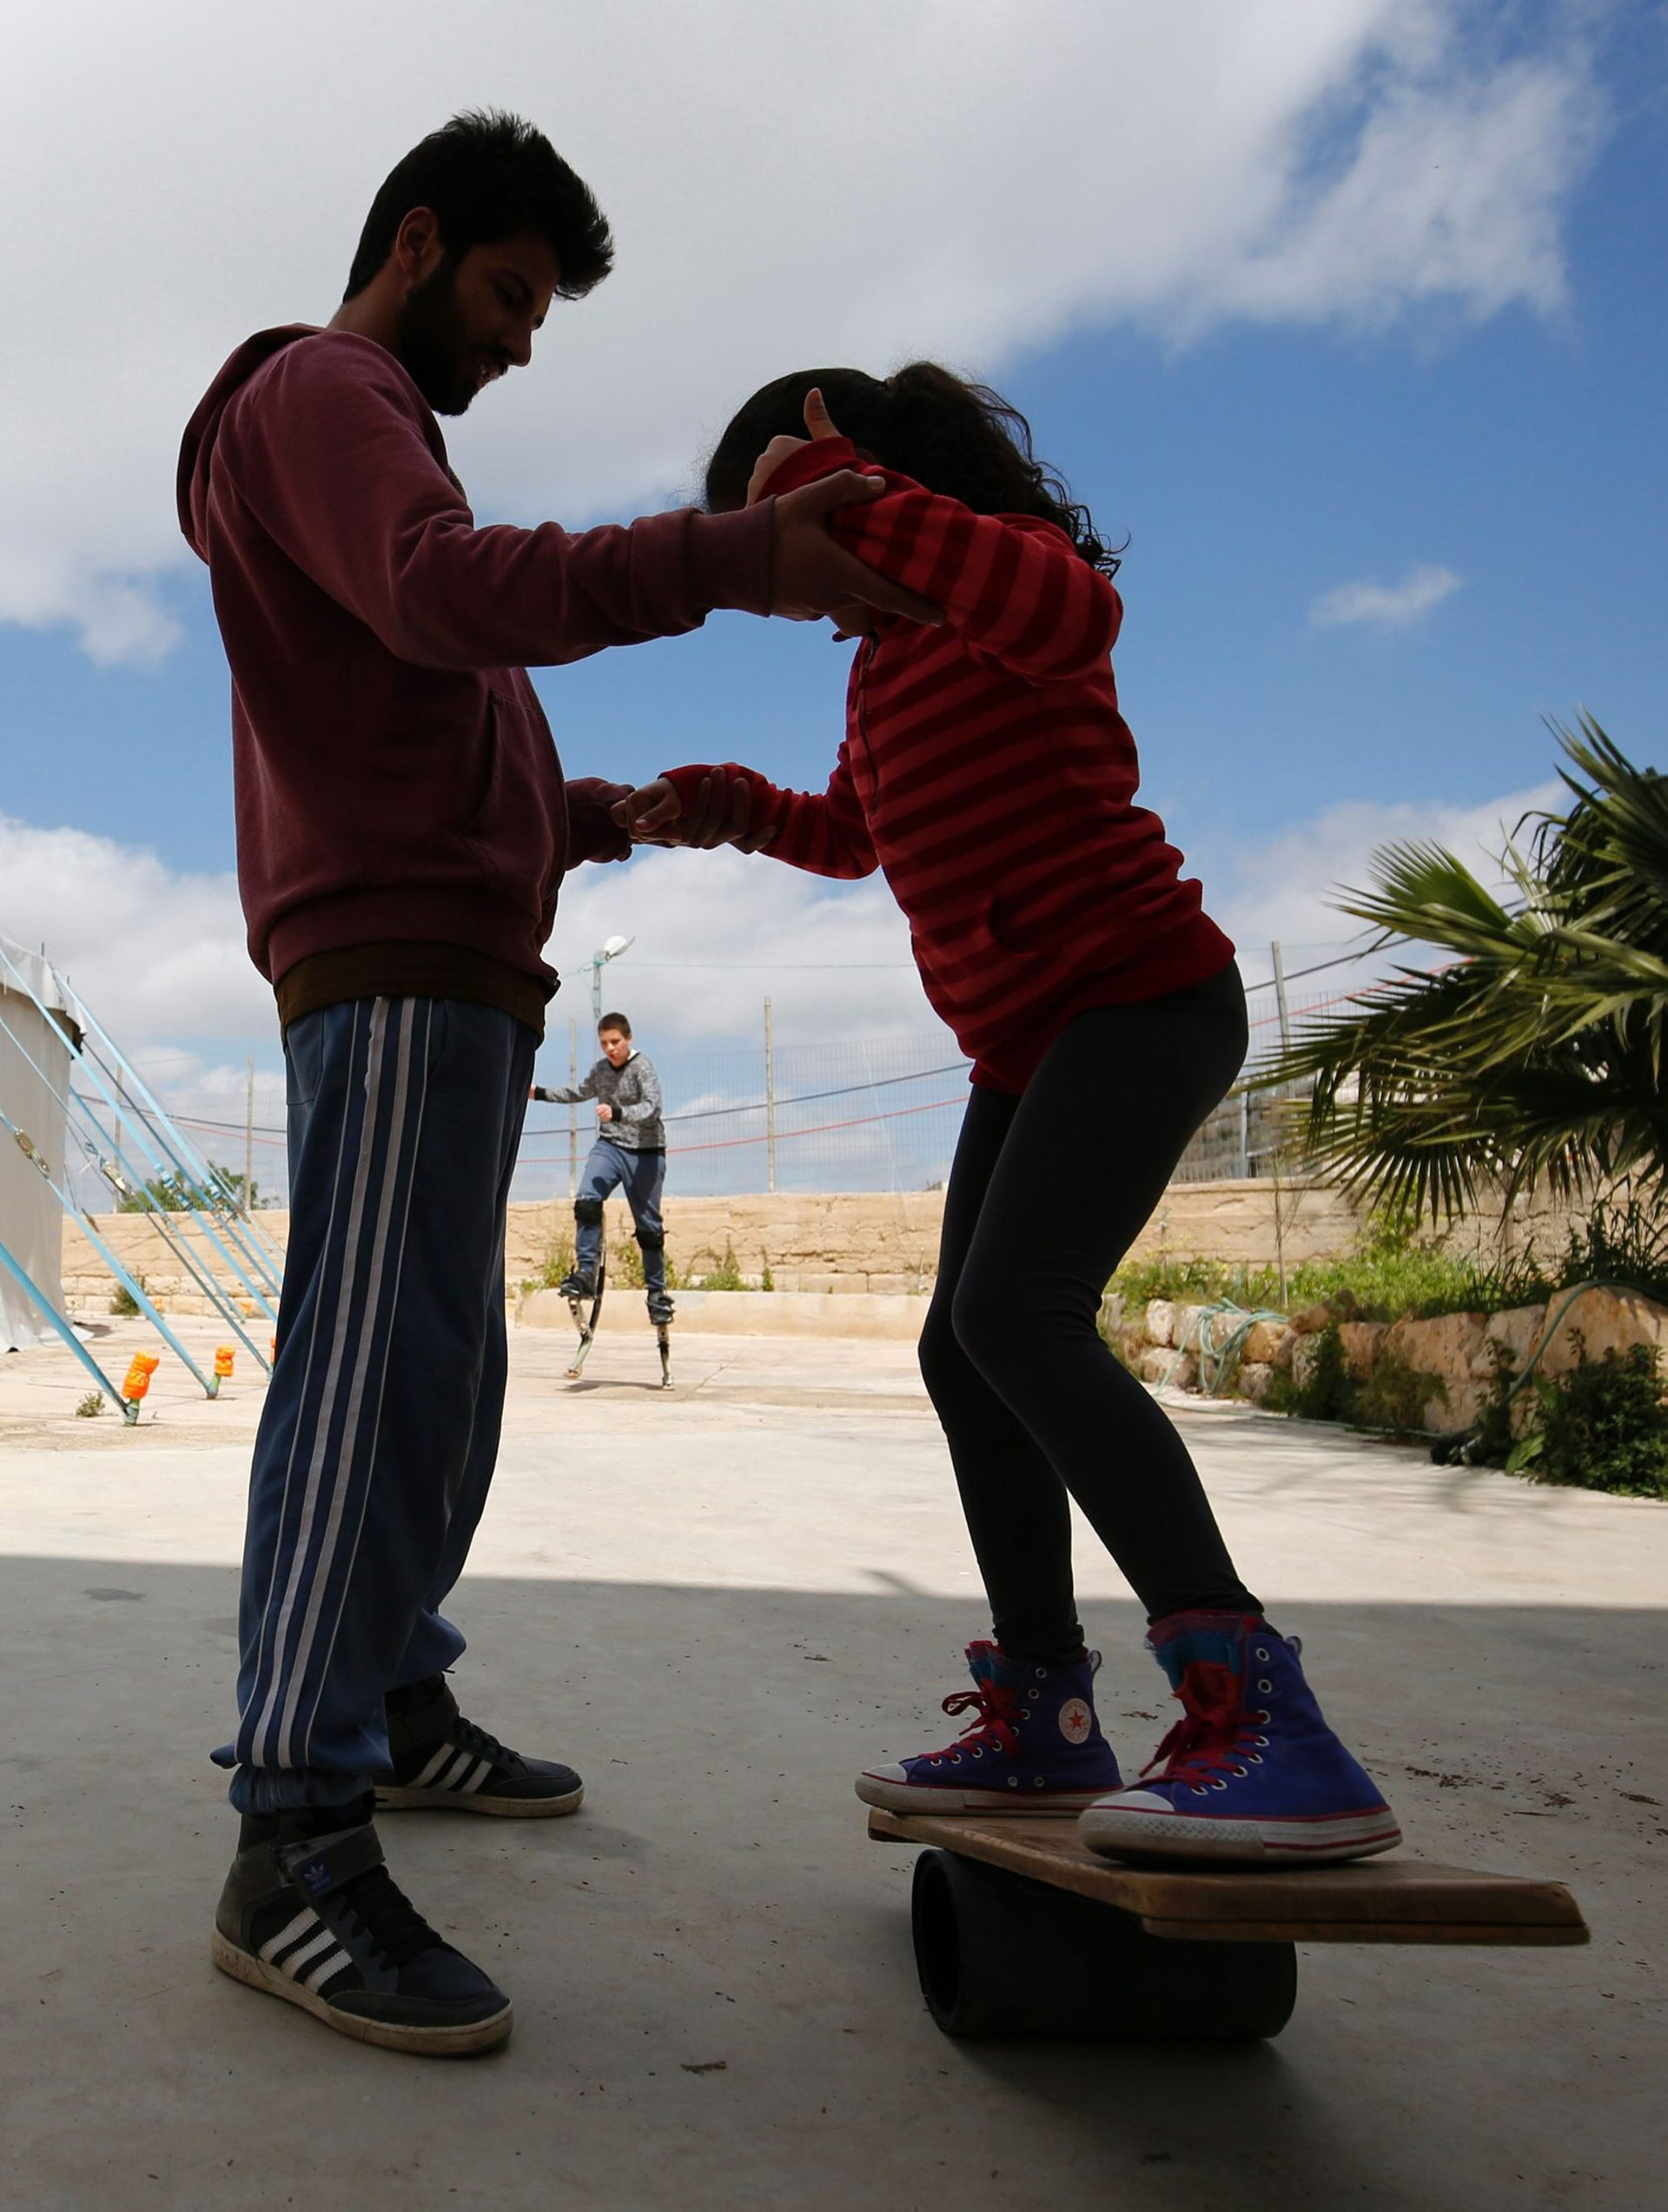 A young Palestinian trains on a trapeze at the Palestinian Circus School in the village of Bir Zeit, near Ramallah on March 22, 2016.